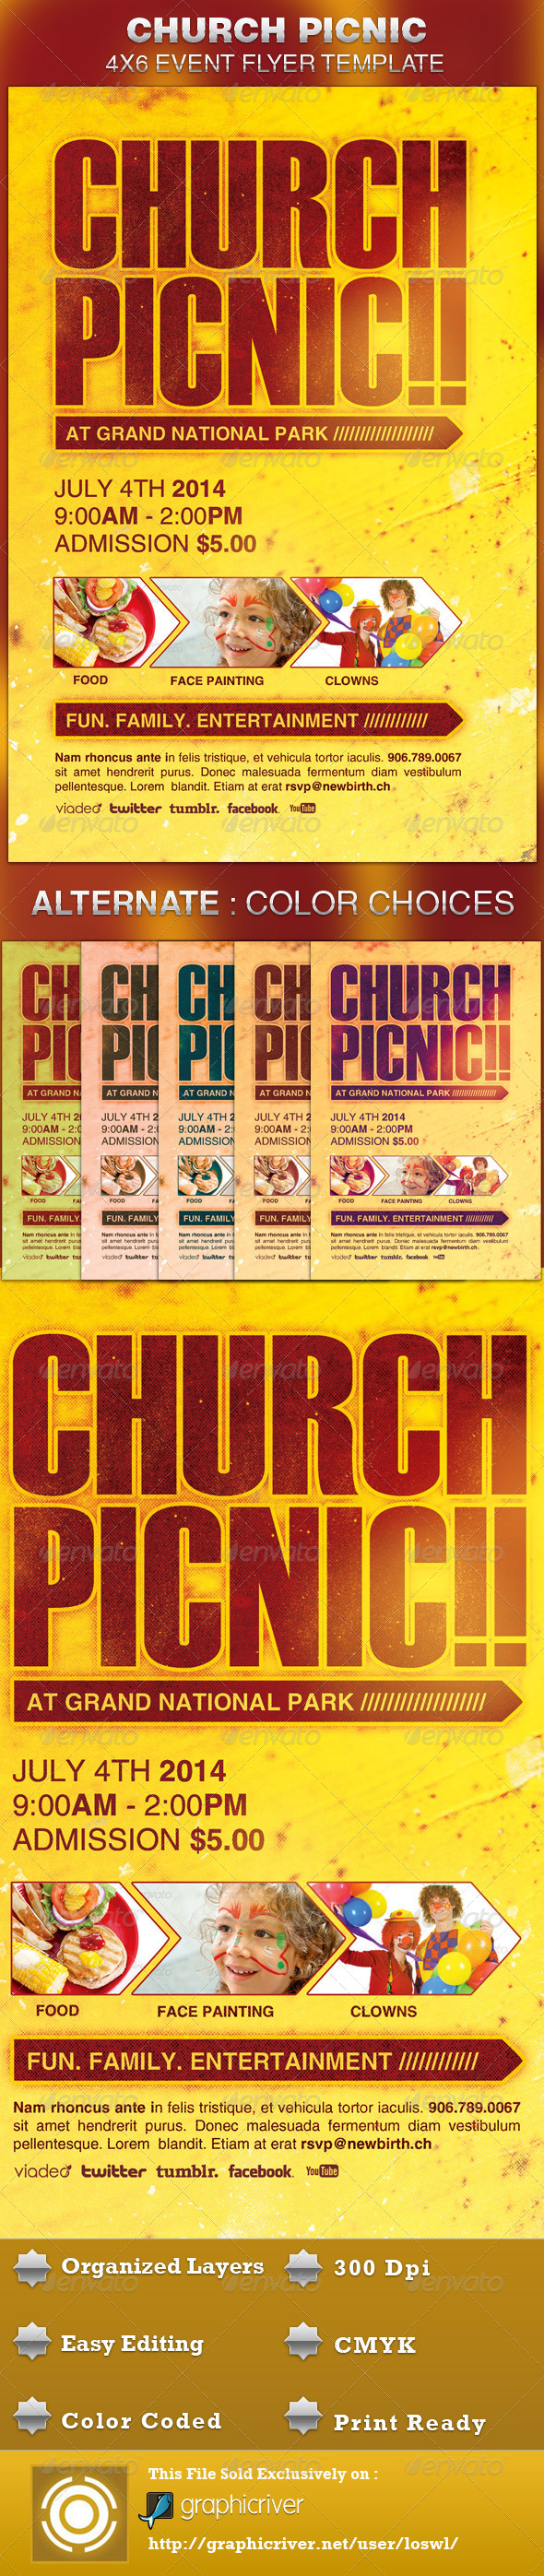 Example Picnic Flyer